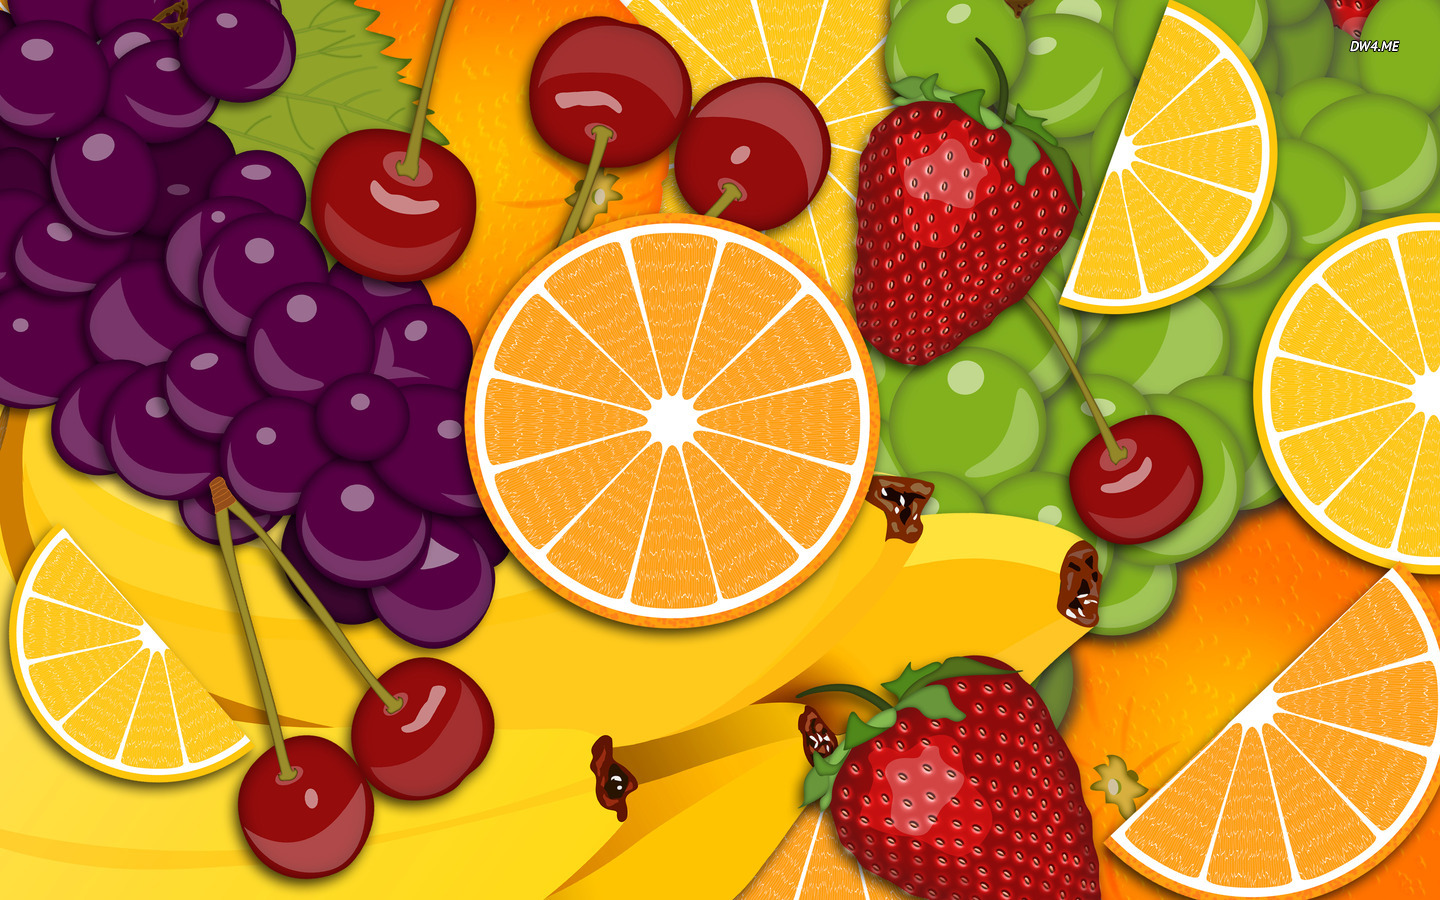 Fruit images Fruit Punch HD wallpaper and background 1440x900